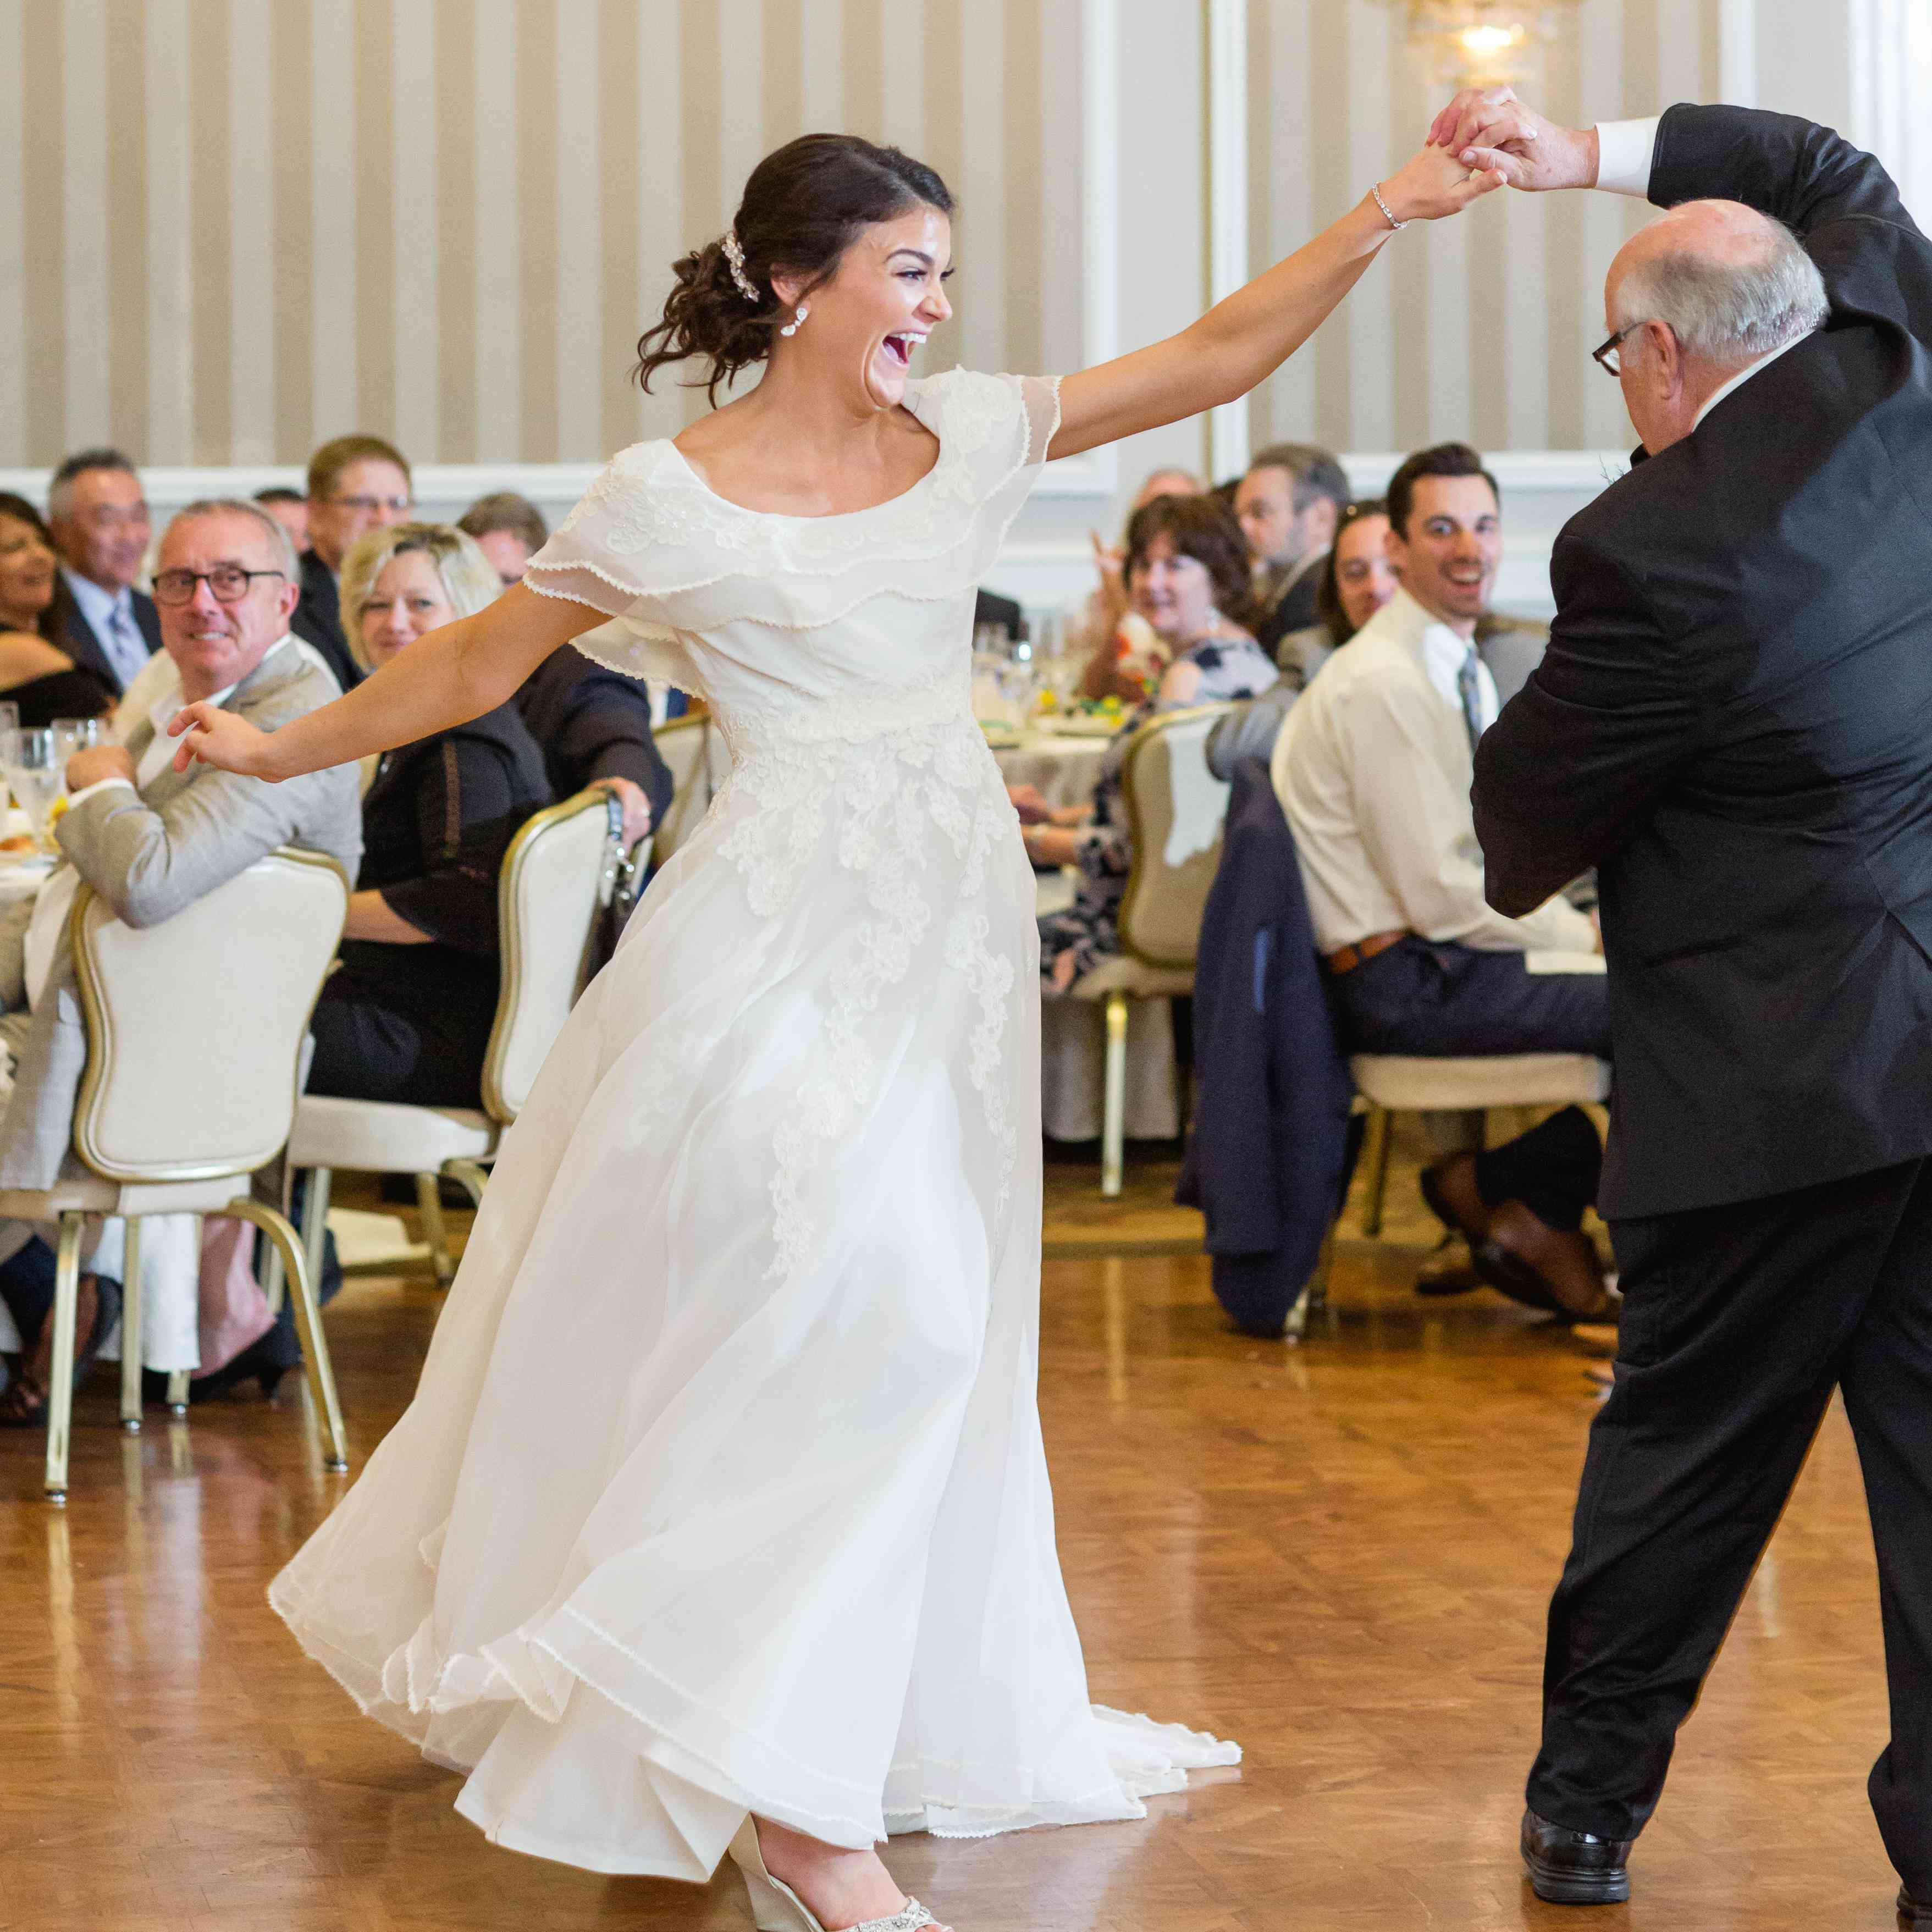 Wedding Gown For Parents: This Bride Surprised Her Parents By Changing Into Her Mom